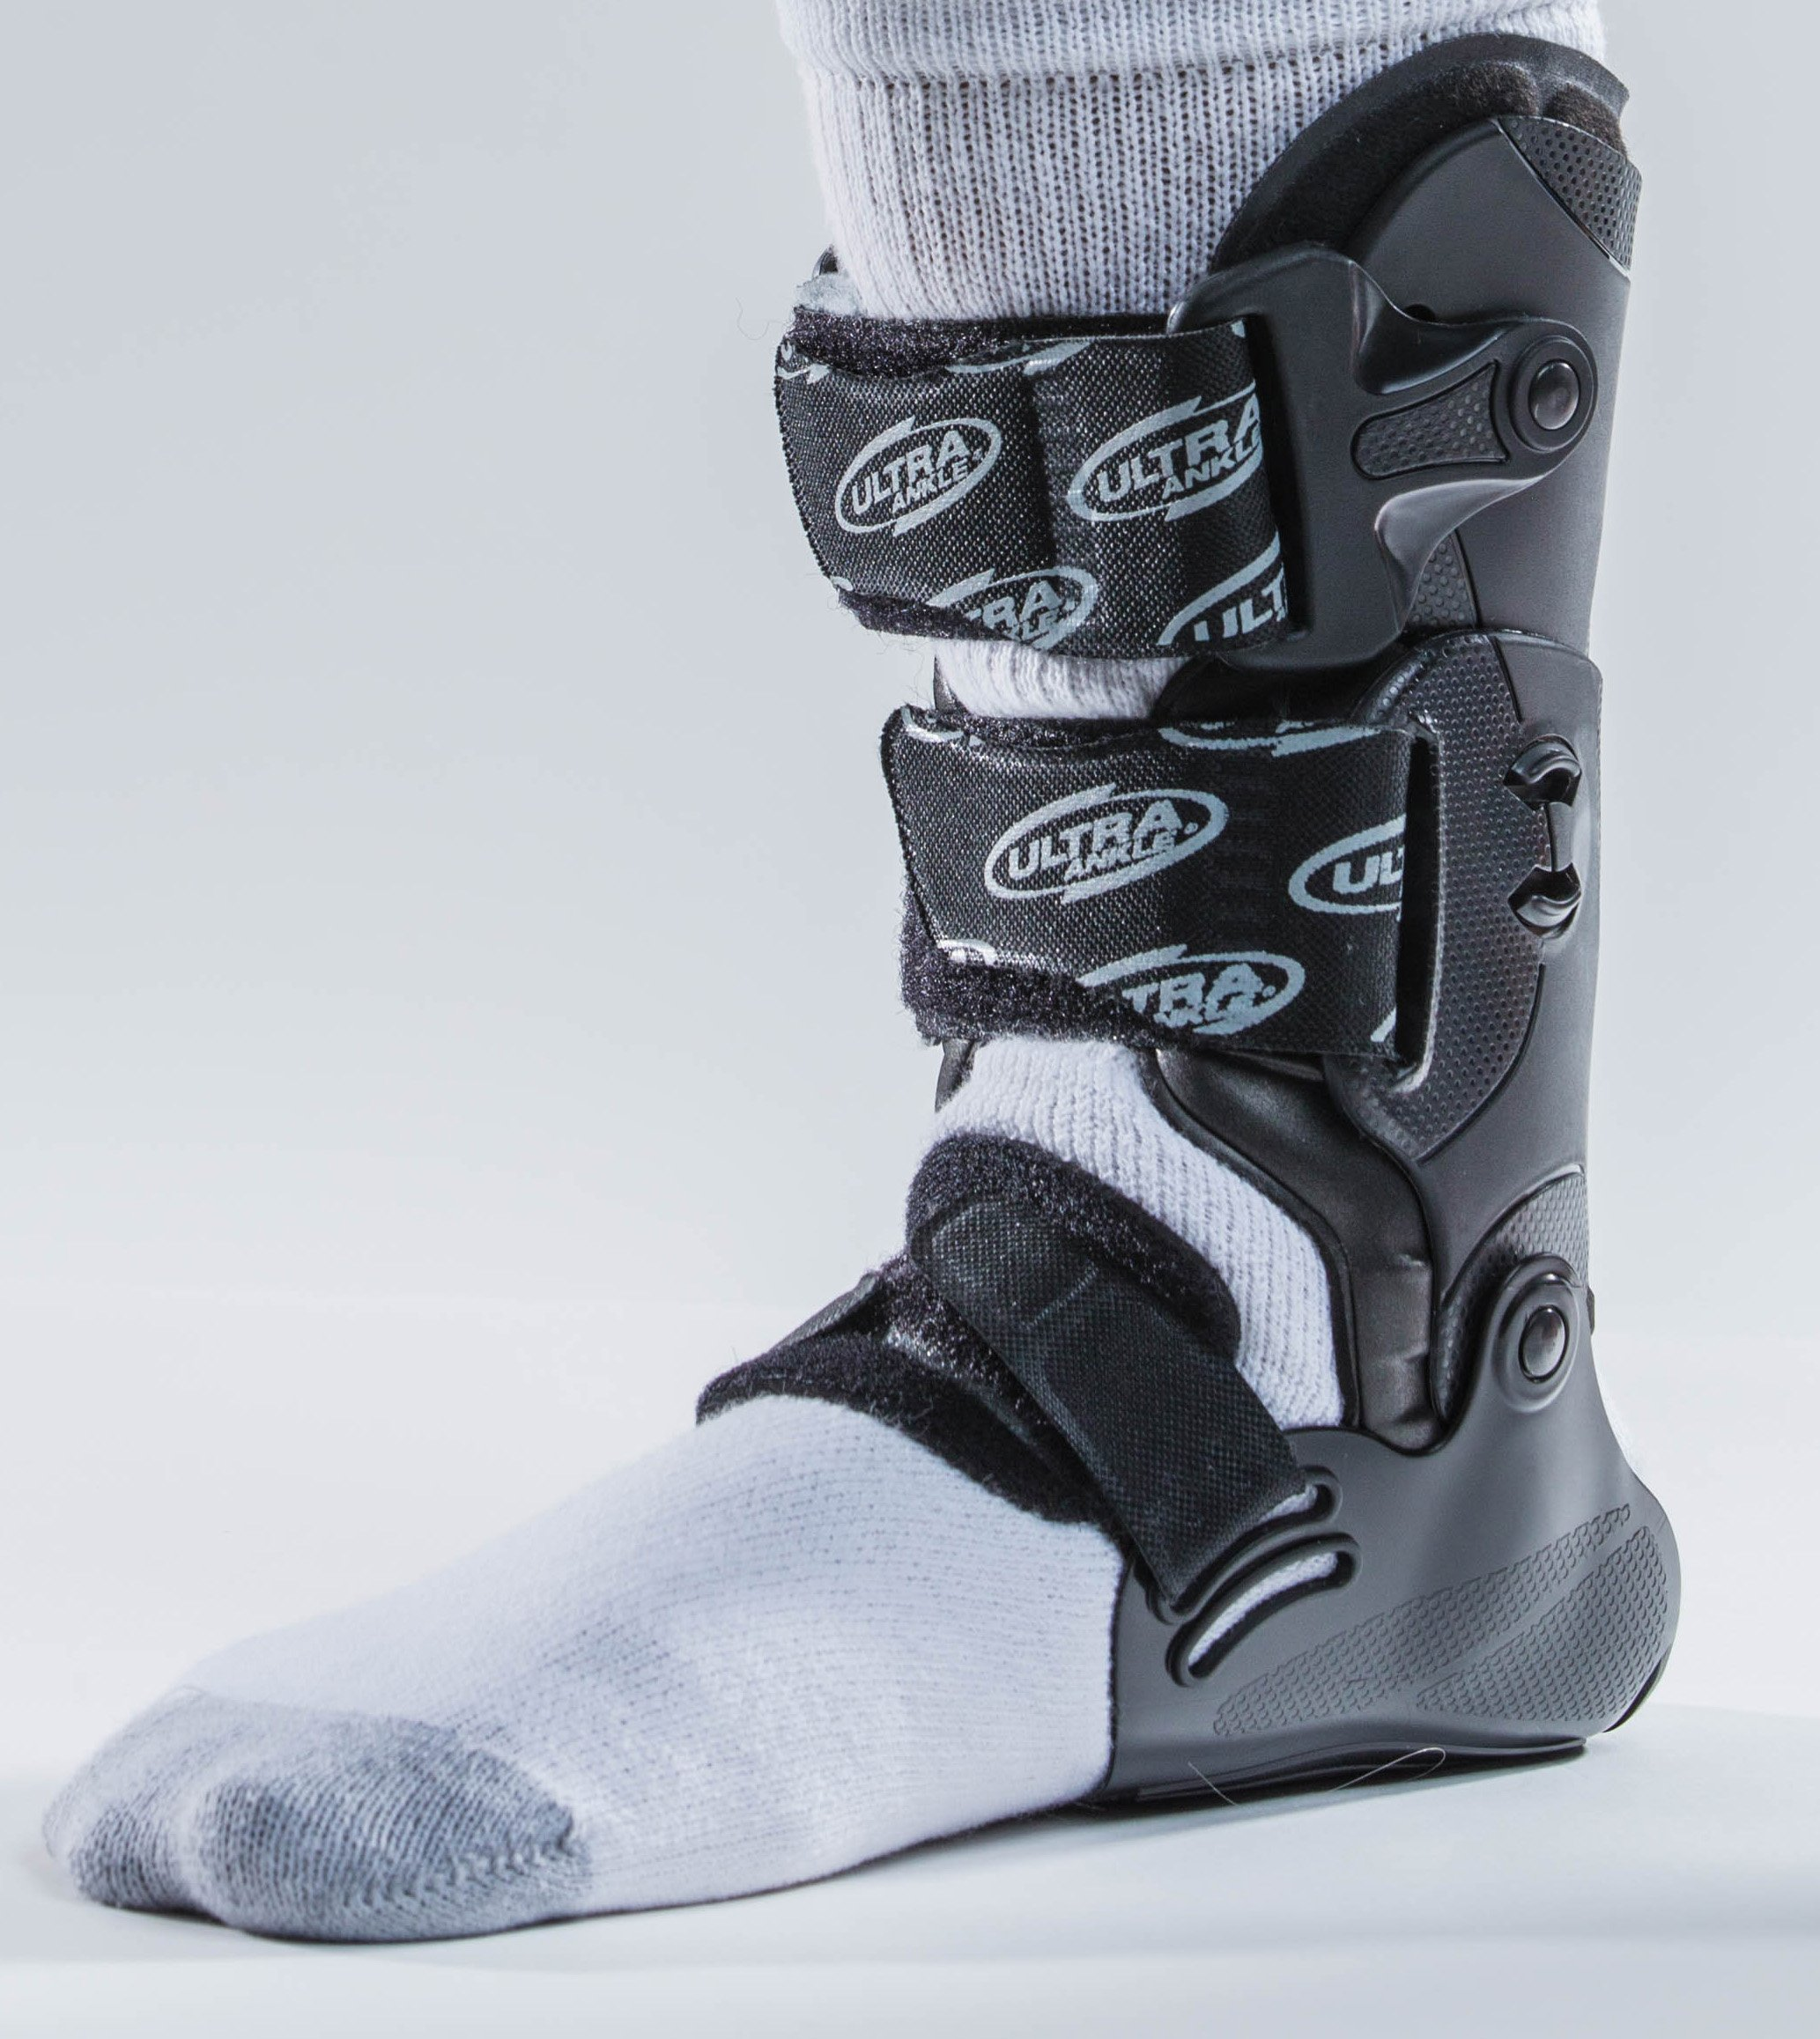 Ultra CTS (Custom Treatment System) Ankle Brace for Acute Ankle Injuries _ Treat and Rehabilitate Low and High Ankle Injuries and Return to Activity Quickly by Ultra Ankle